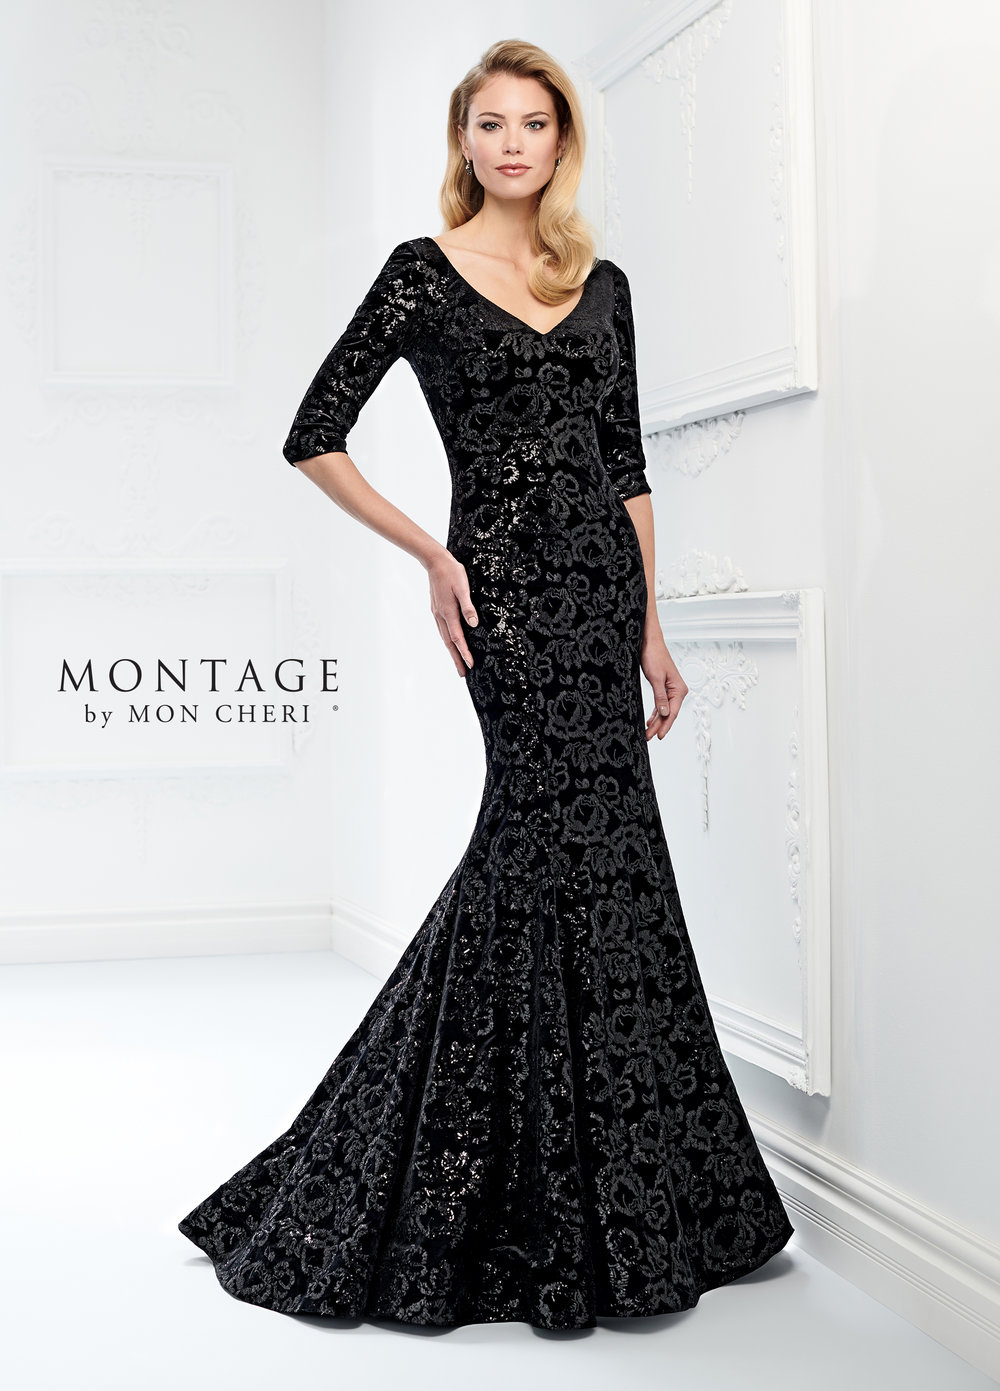 long-sleeve-black-gown-218909-A.jpg